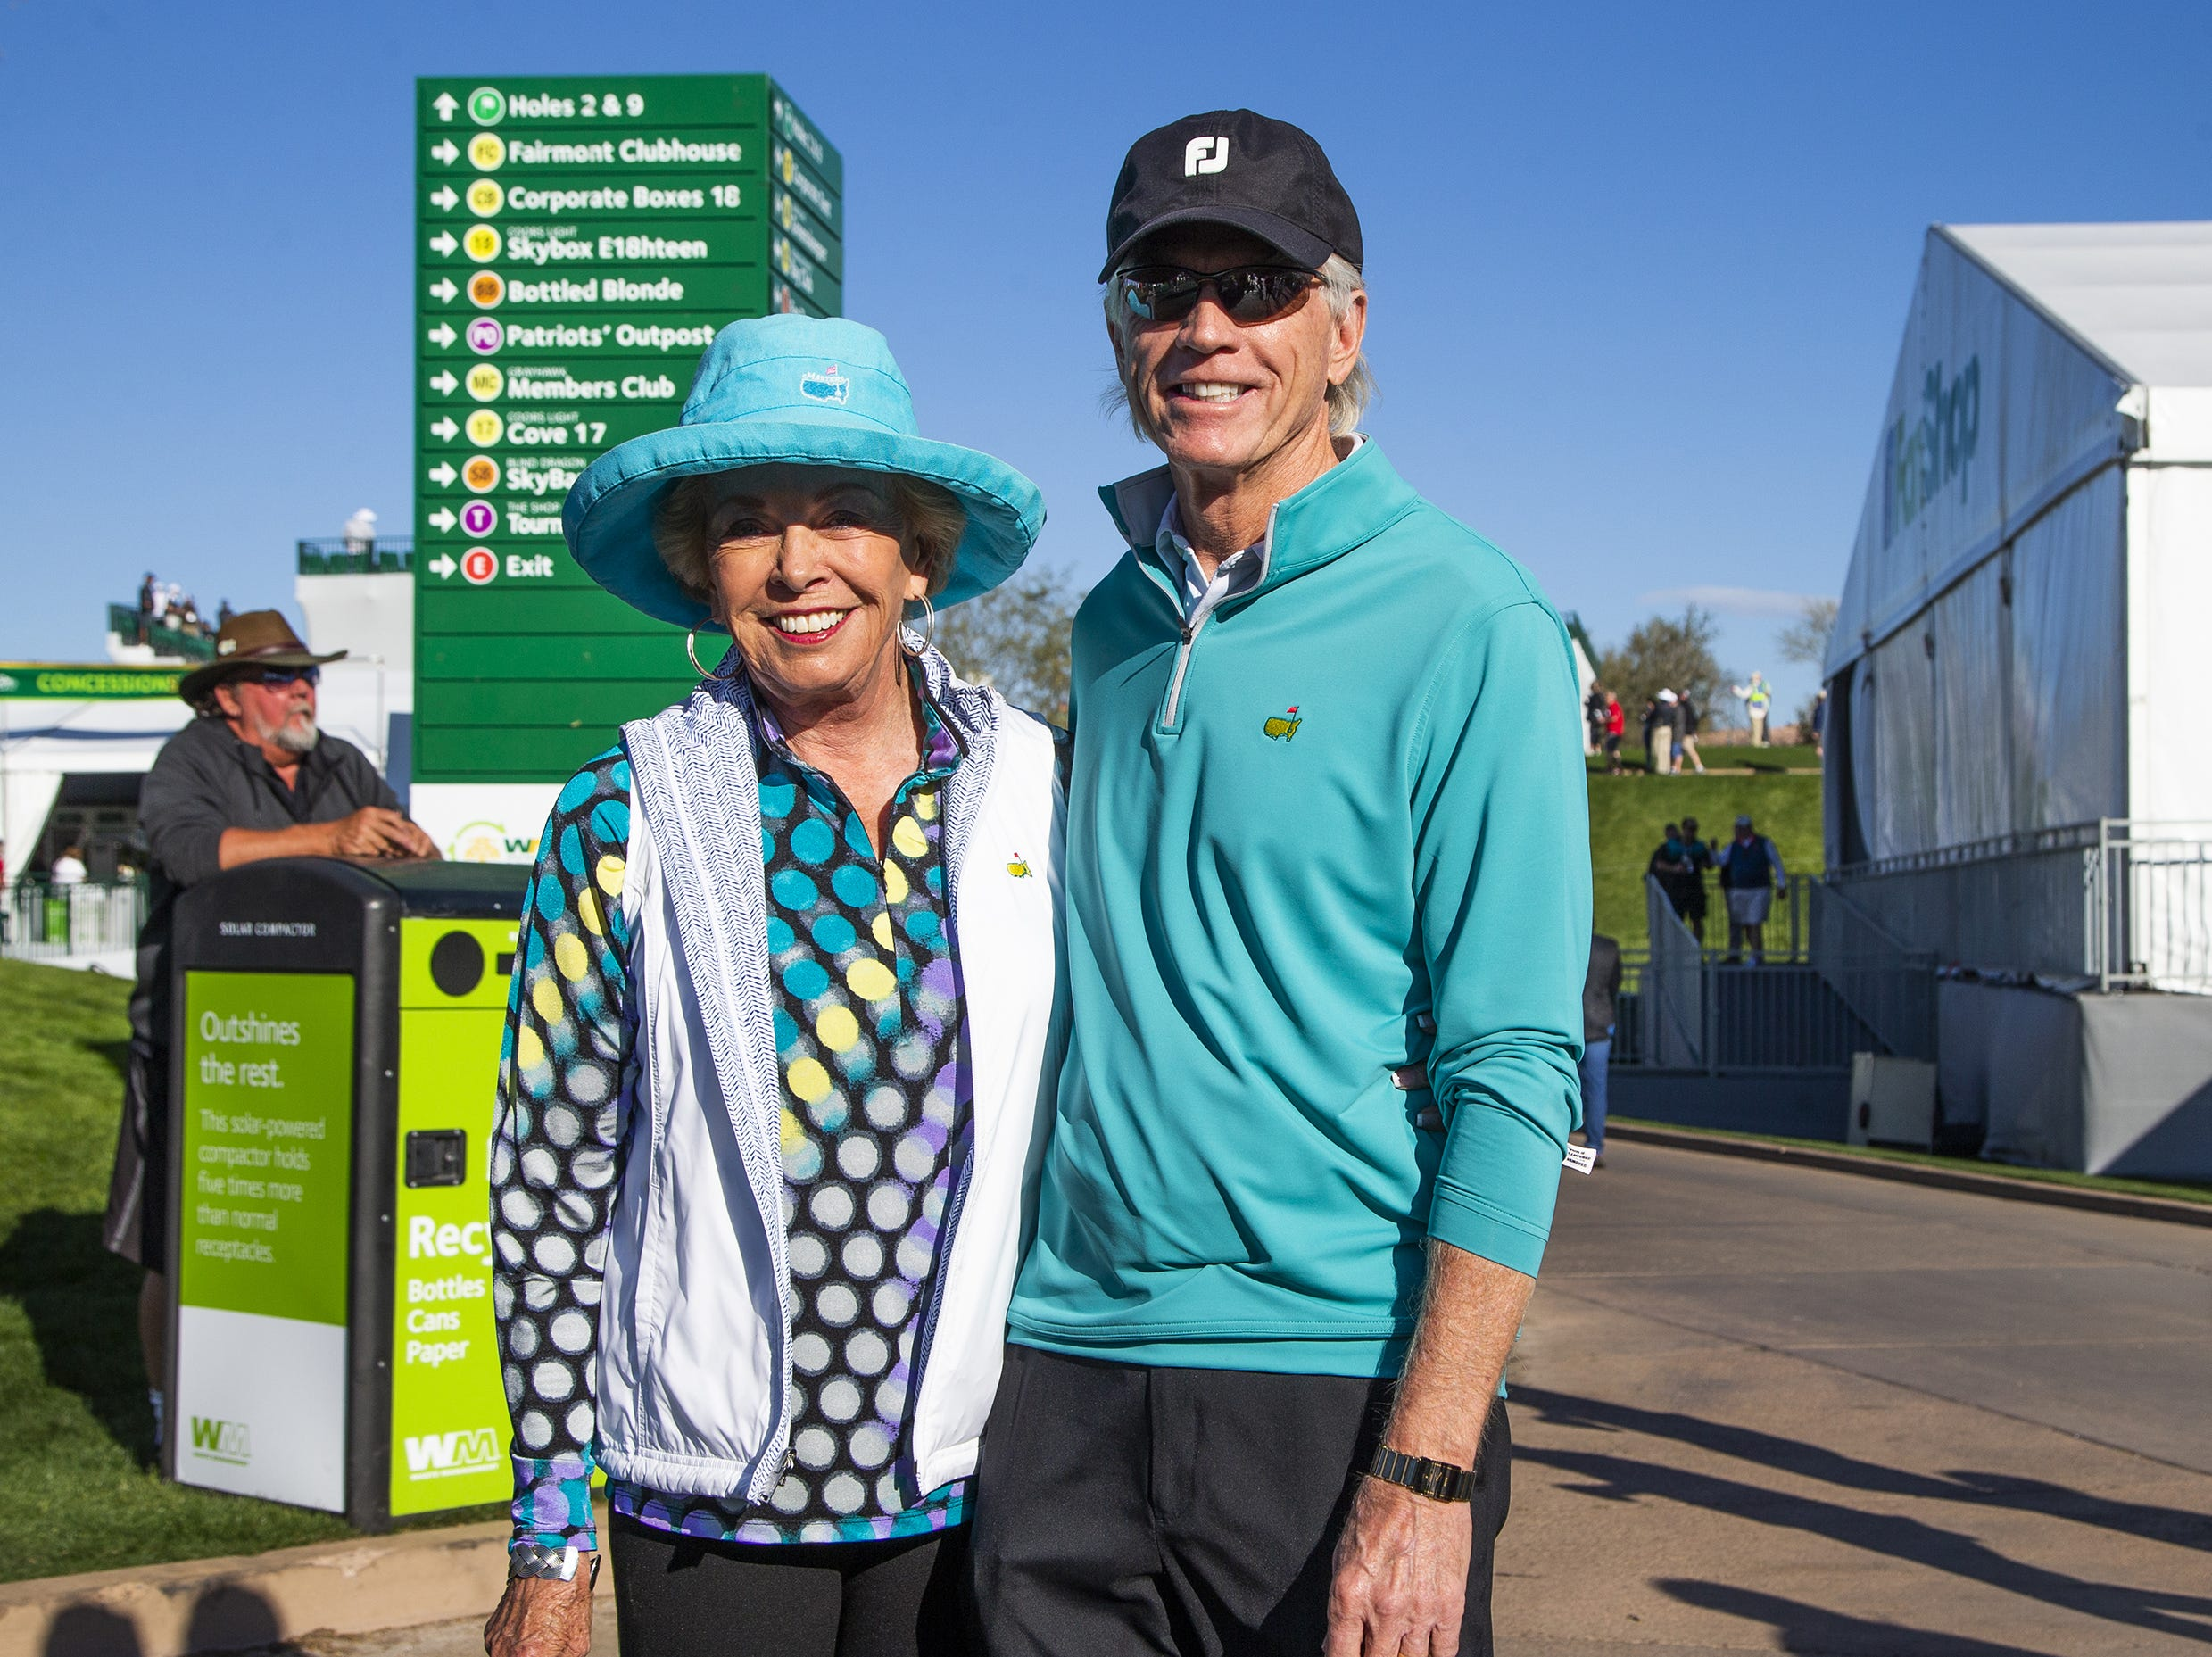 Ruth Fullmer and her husband, R.J., Phoenix, dressed to impress for the second round of the Waste Management Phoenix Open at the TPC Scottsdale, Friday, February 1, 2019.